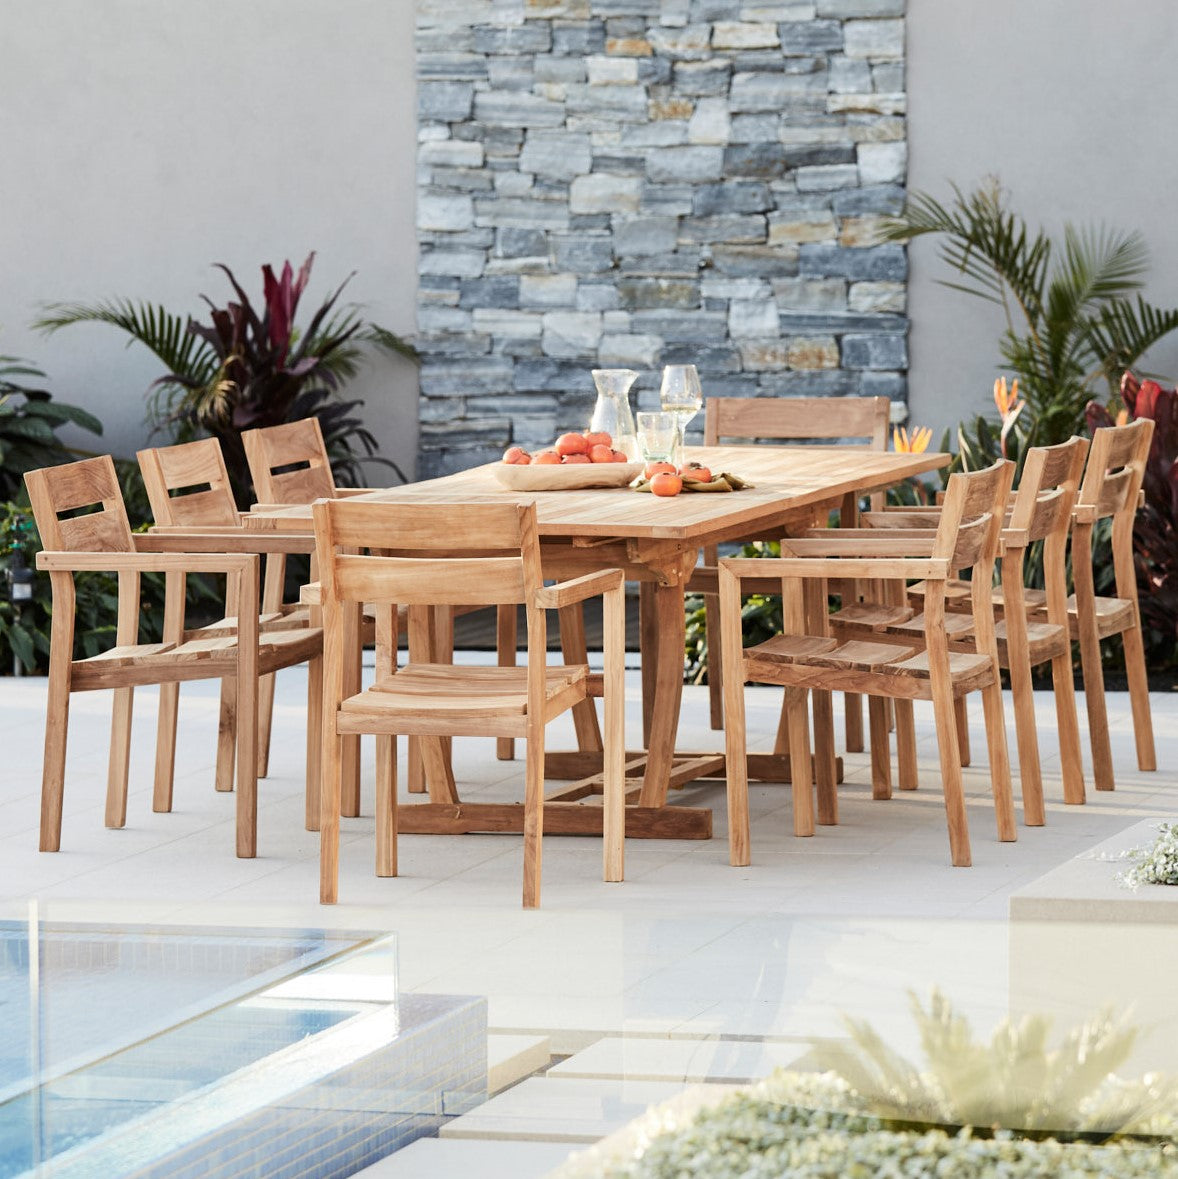 Teak-outdoor-dining-setting-Bakke-r1